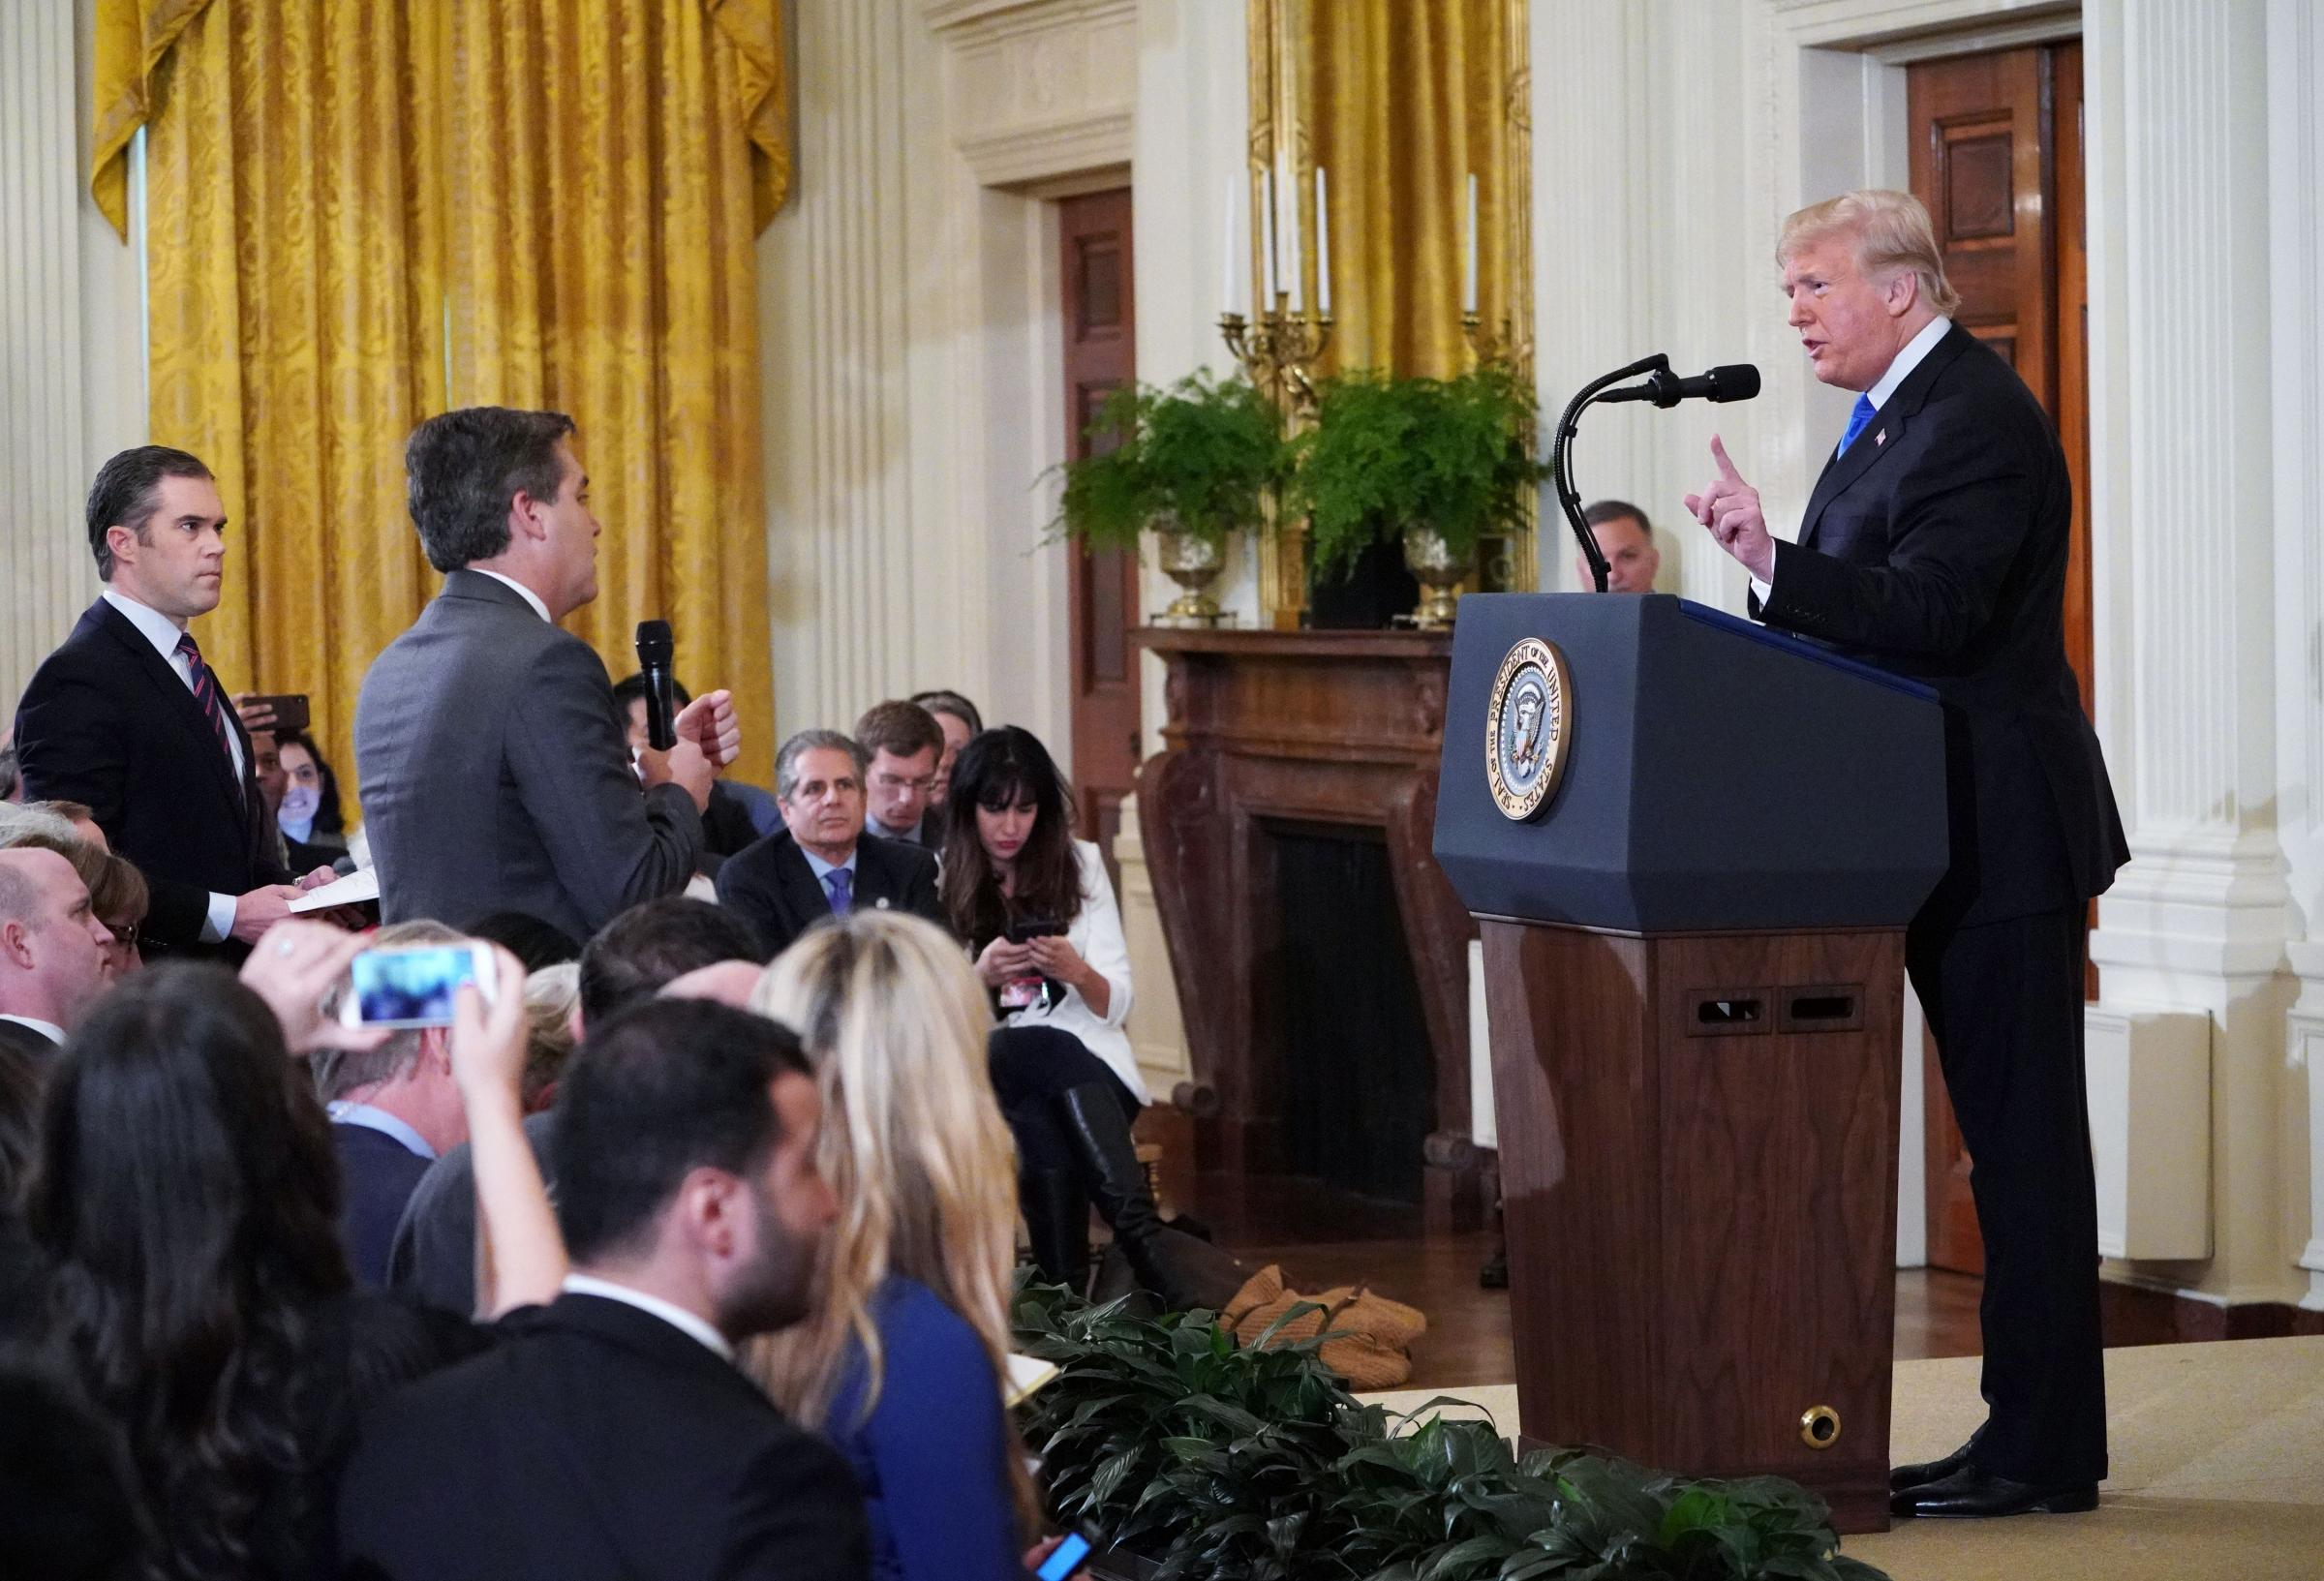 CNN sues Donald Trump for barring Jim Acosta from White House press corps